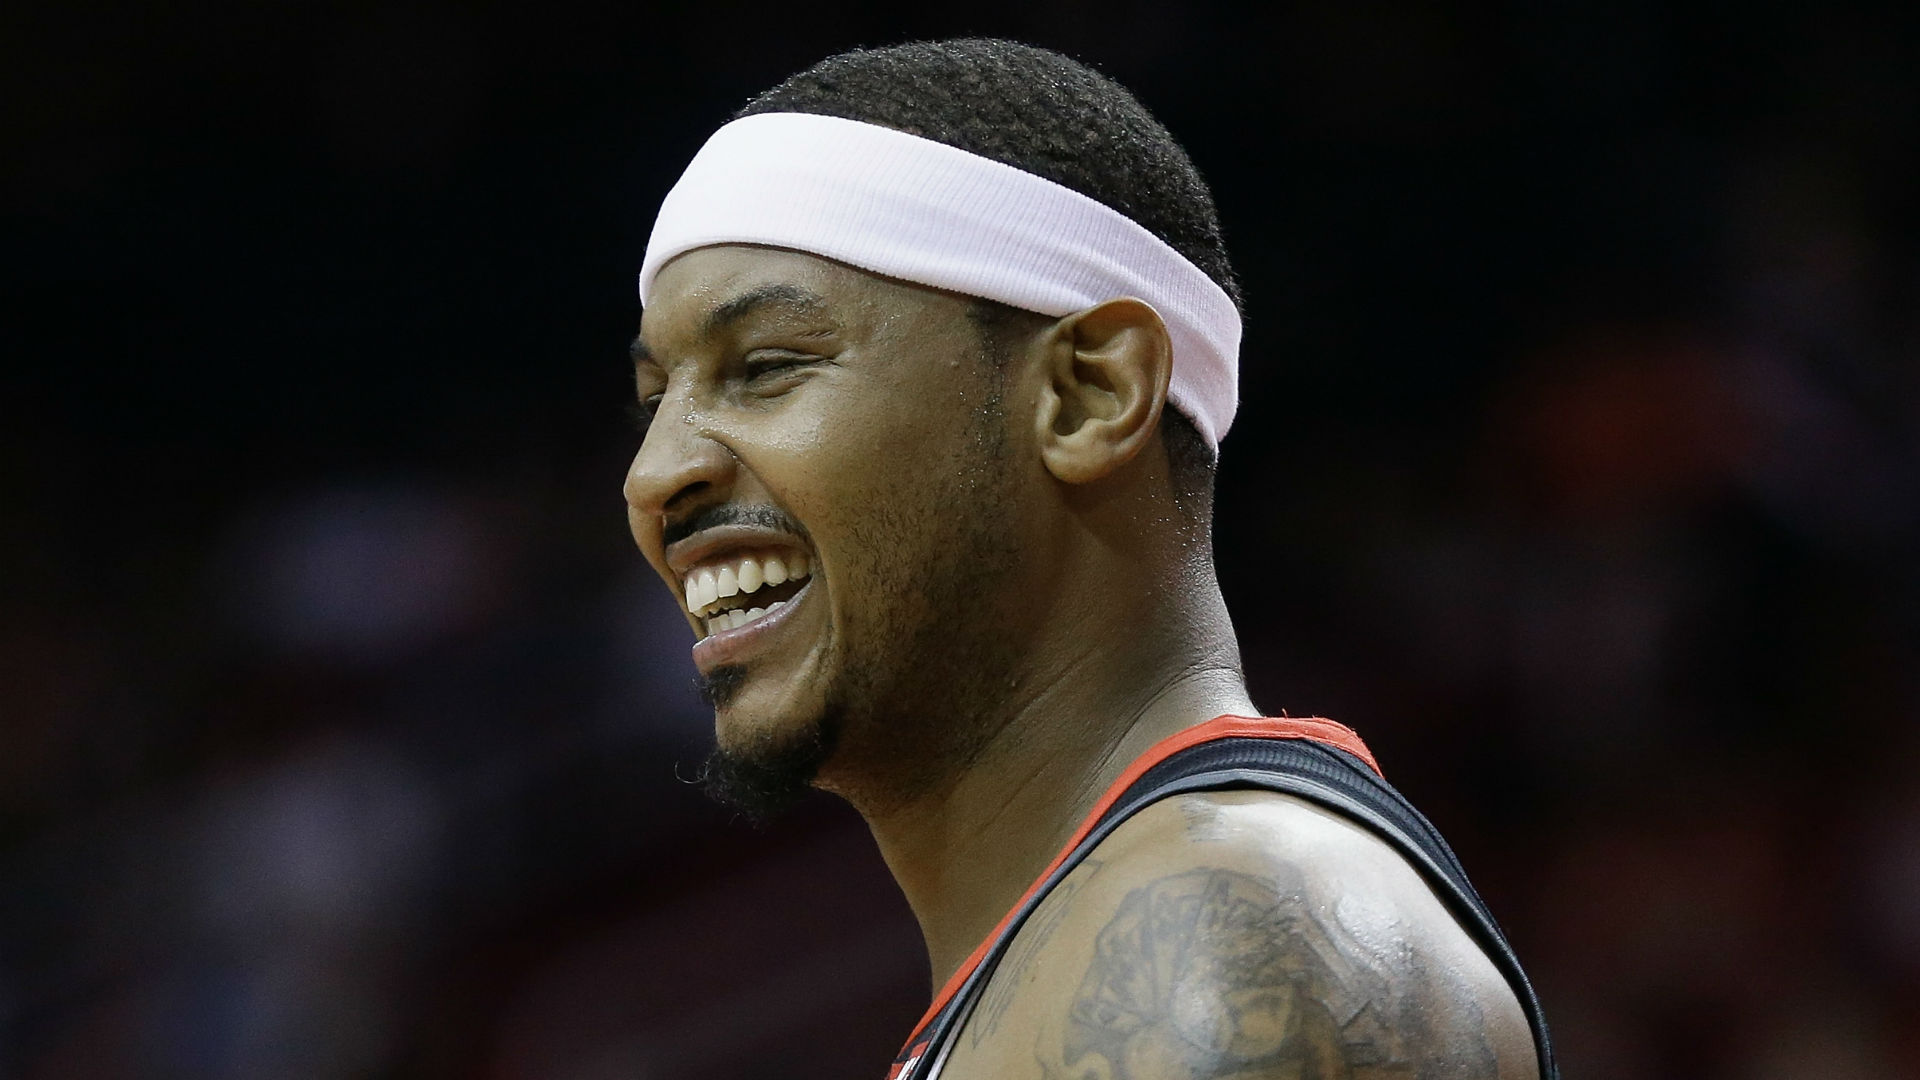 Rockets GM denies Carmelo Anthony will be waived despite reports to contrary